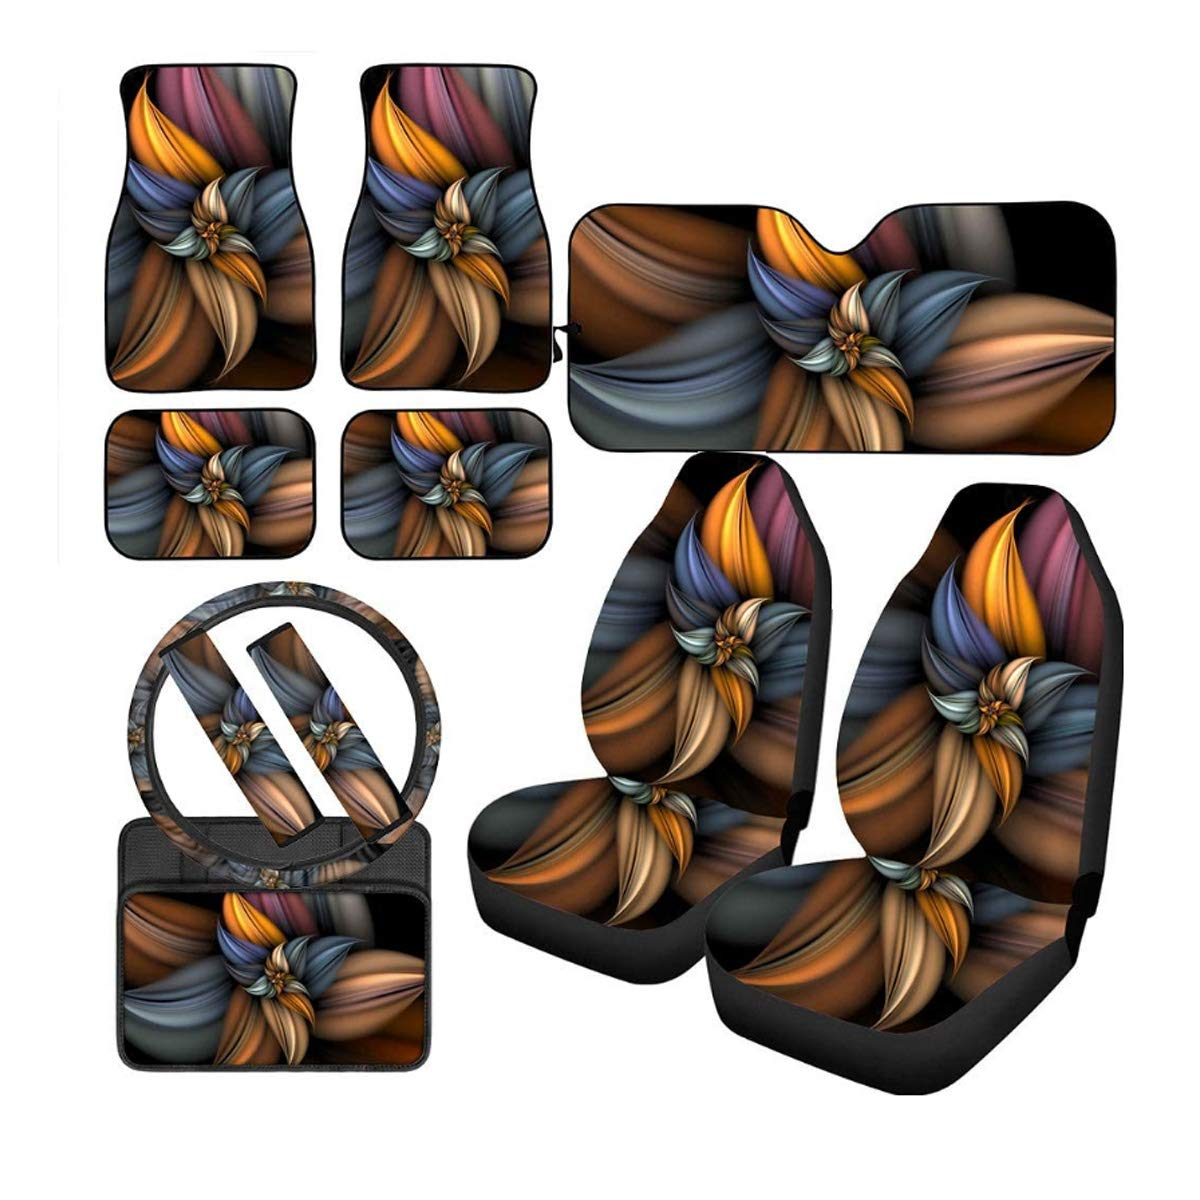 Amzbeauty 3D Floral Car Floor Mat Carpet Custom with Front Seat Cover, Windshield Sunshade, Steering Wheel Cover, Armrest Cover, Seat Belt Pads, Universal Car Interior Accessories Decorative